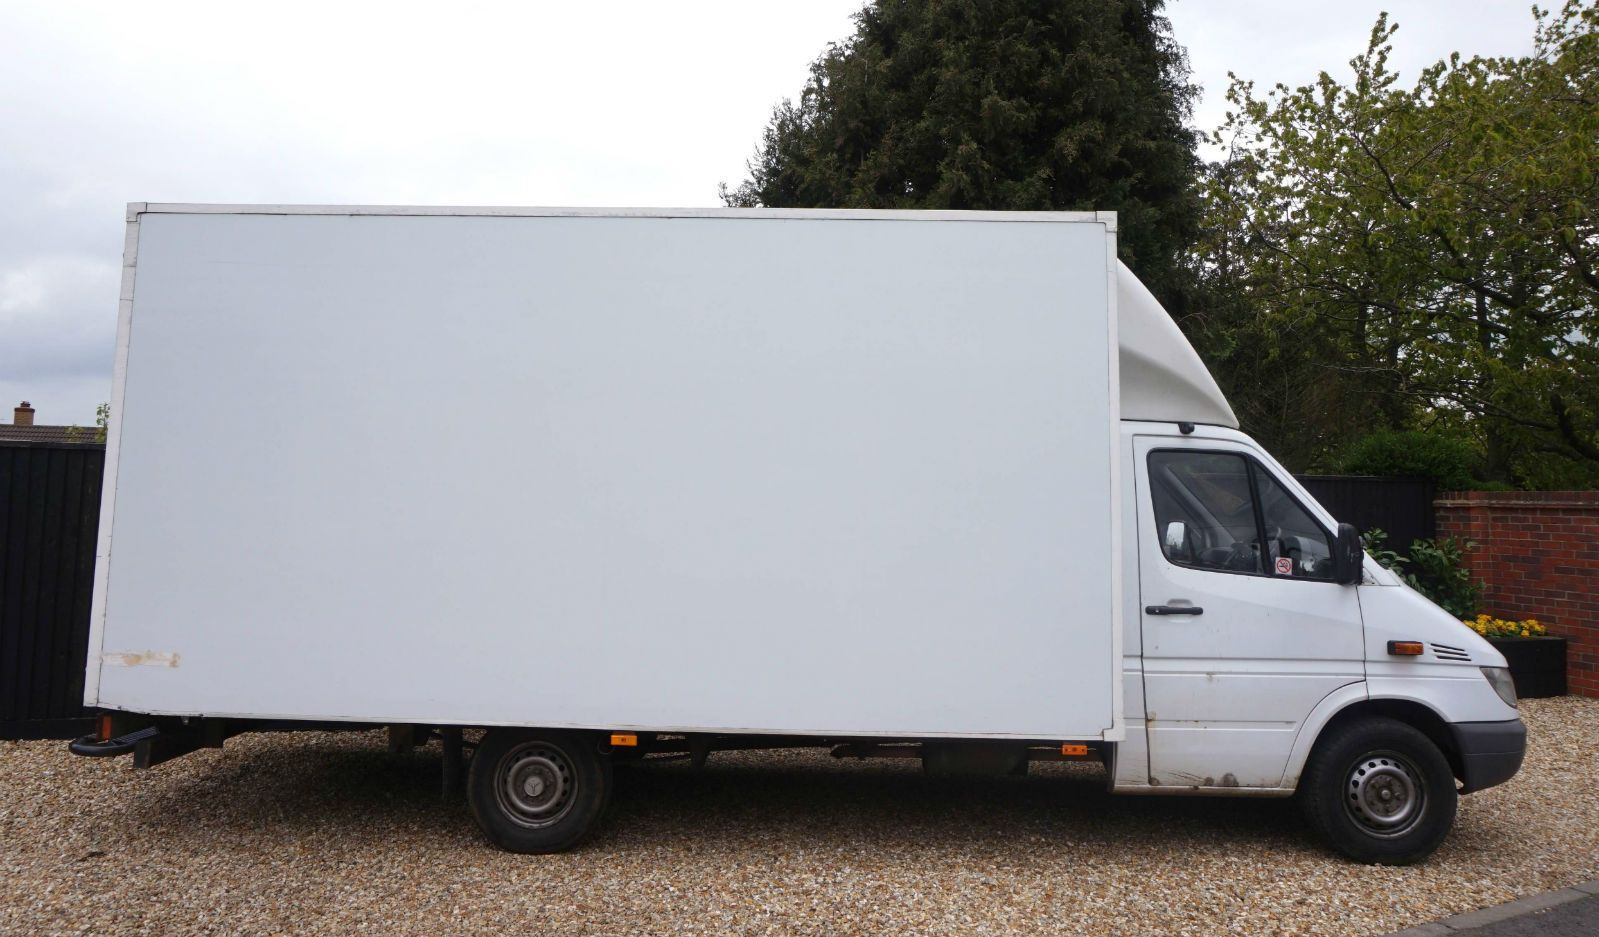 By Photo Congress || Used Luton Vans For Sale On Ebay